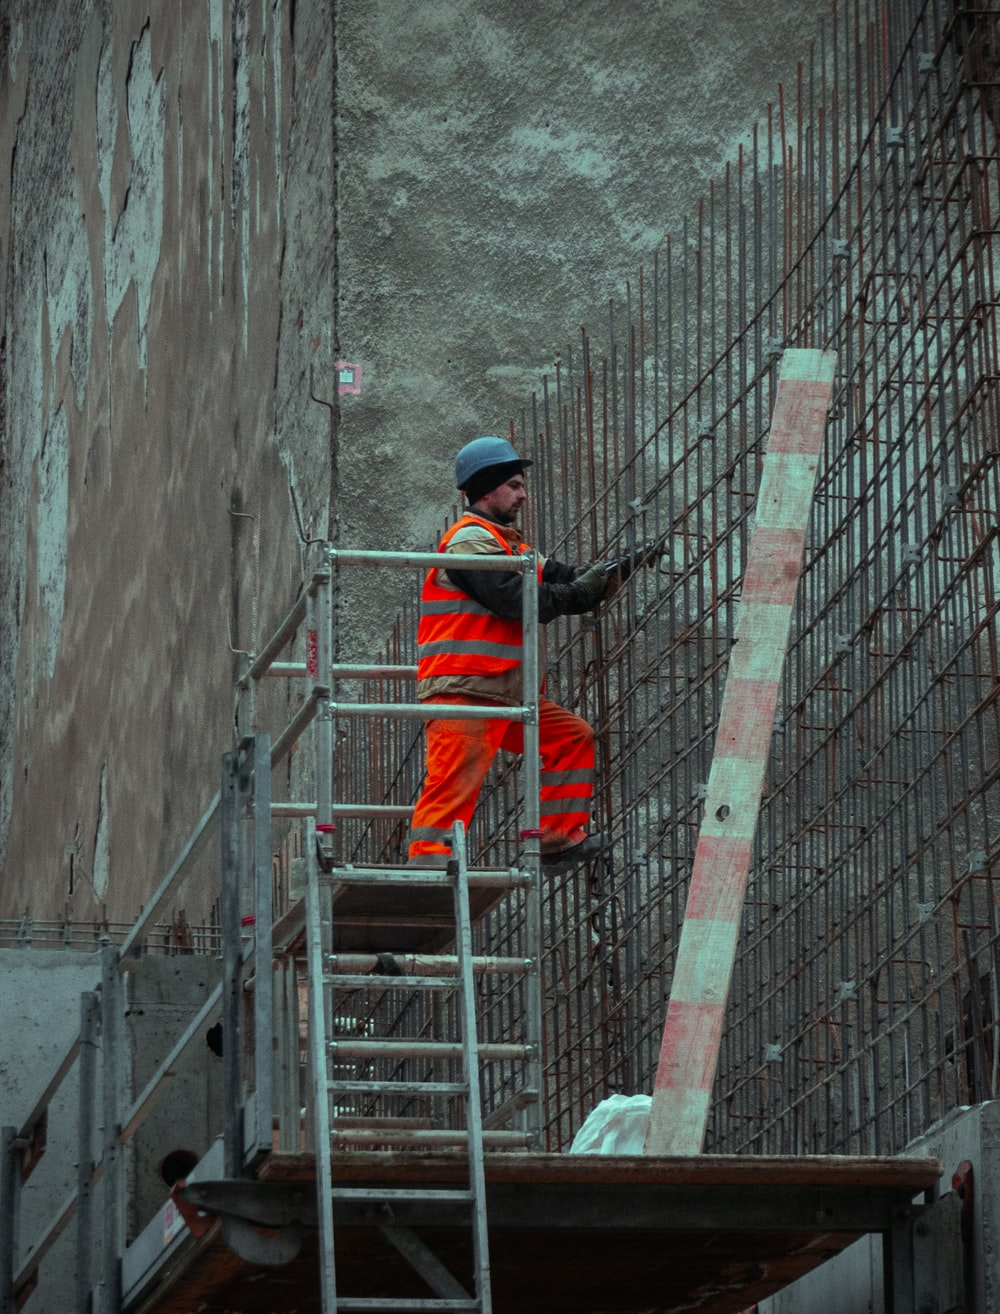 man in red jacket and blue cap standing on ladder